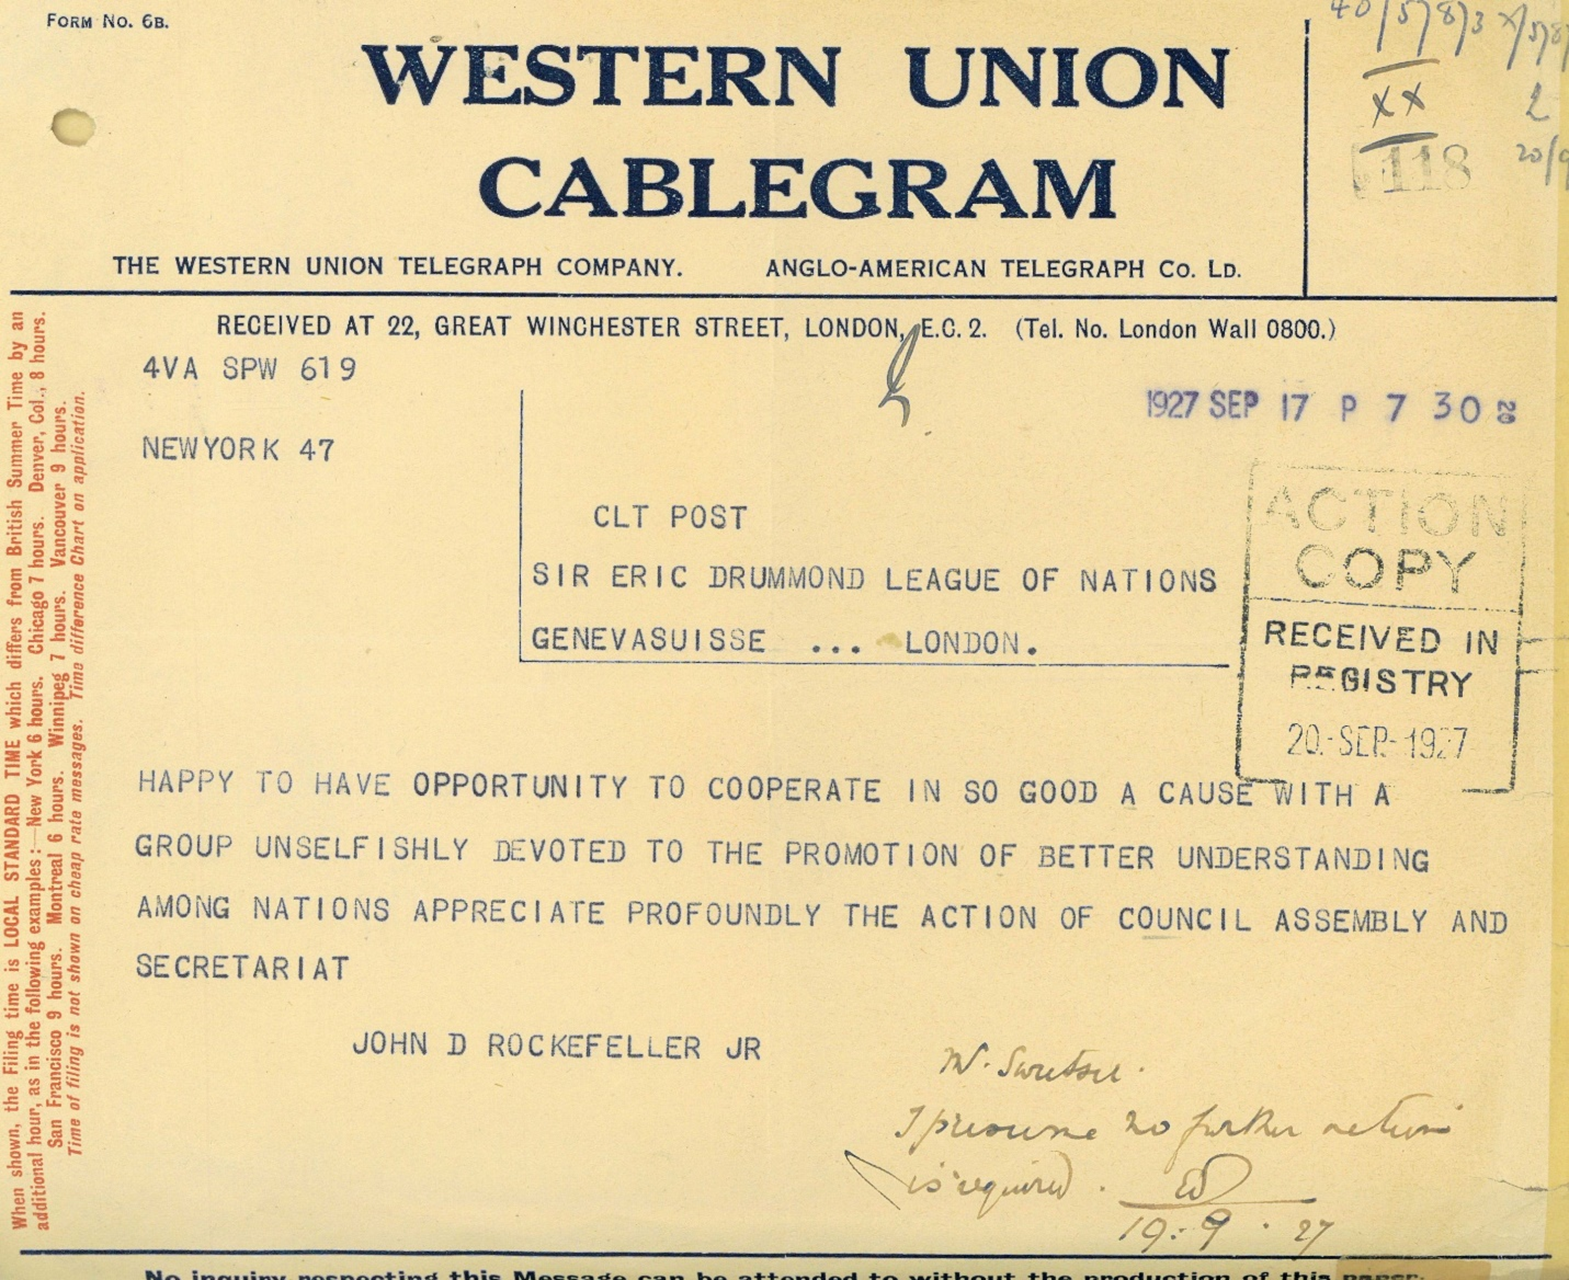 Telegram to Sir Eric Drummond from John D Rockefeller JR